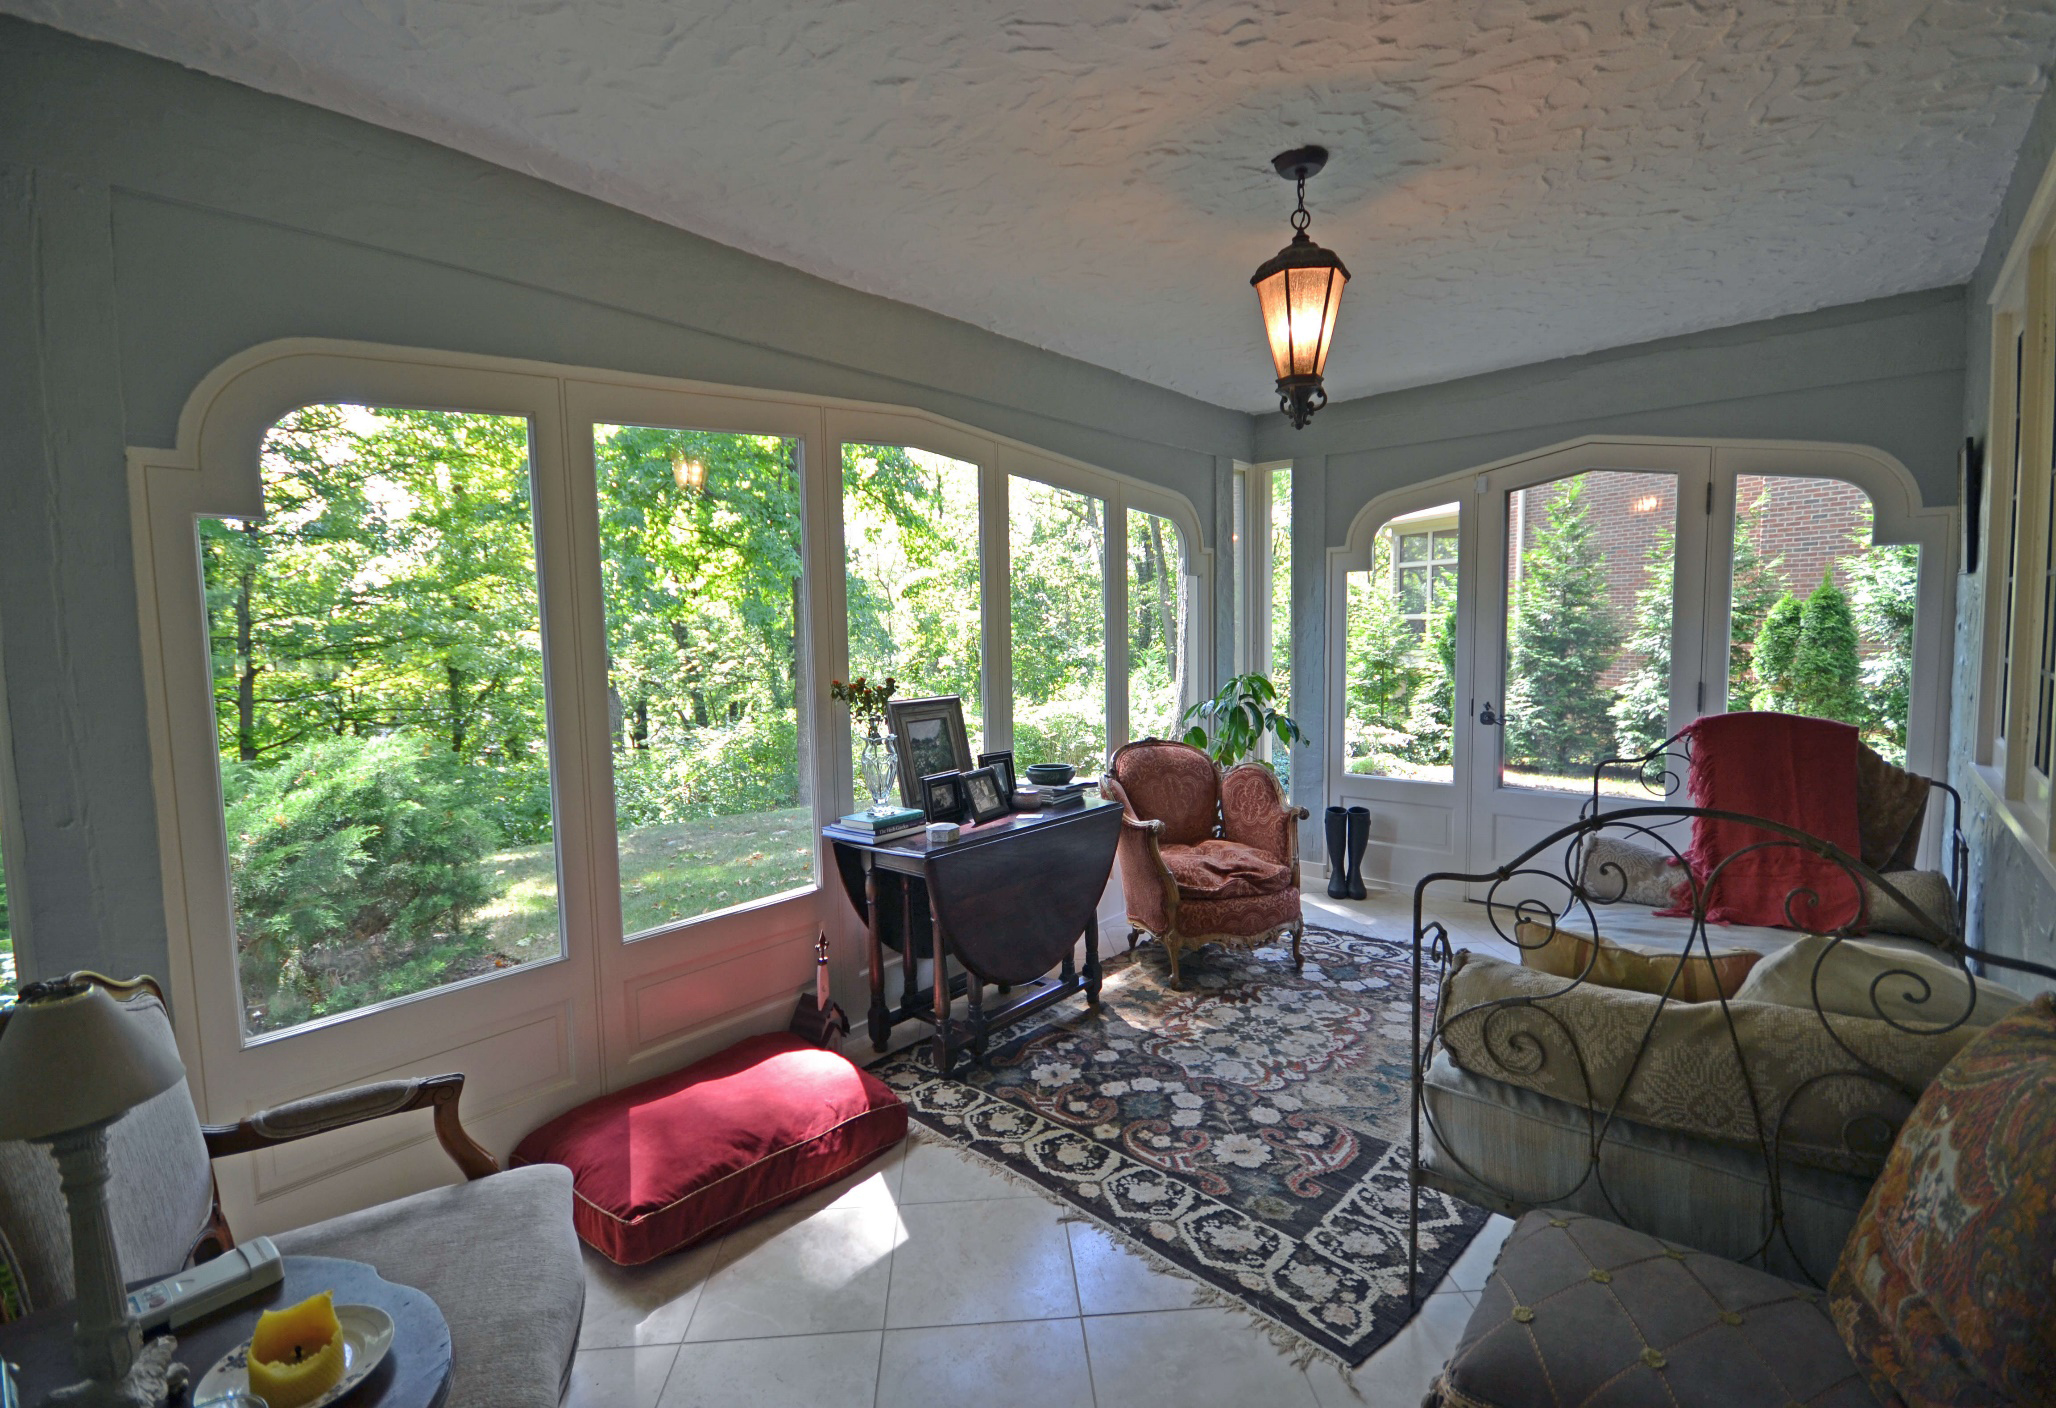 DIGS converted this porch to a four seasons room. Elegant though it is, the process was simpler than you might think. Got a porch you're underutilizing? Hmmmmmm.